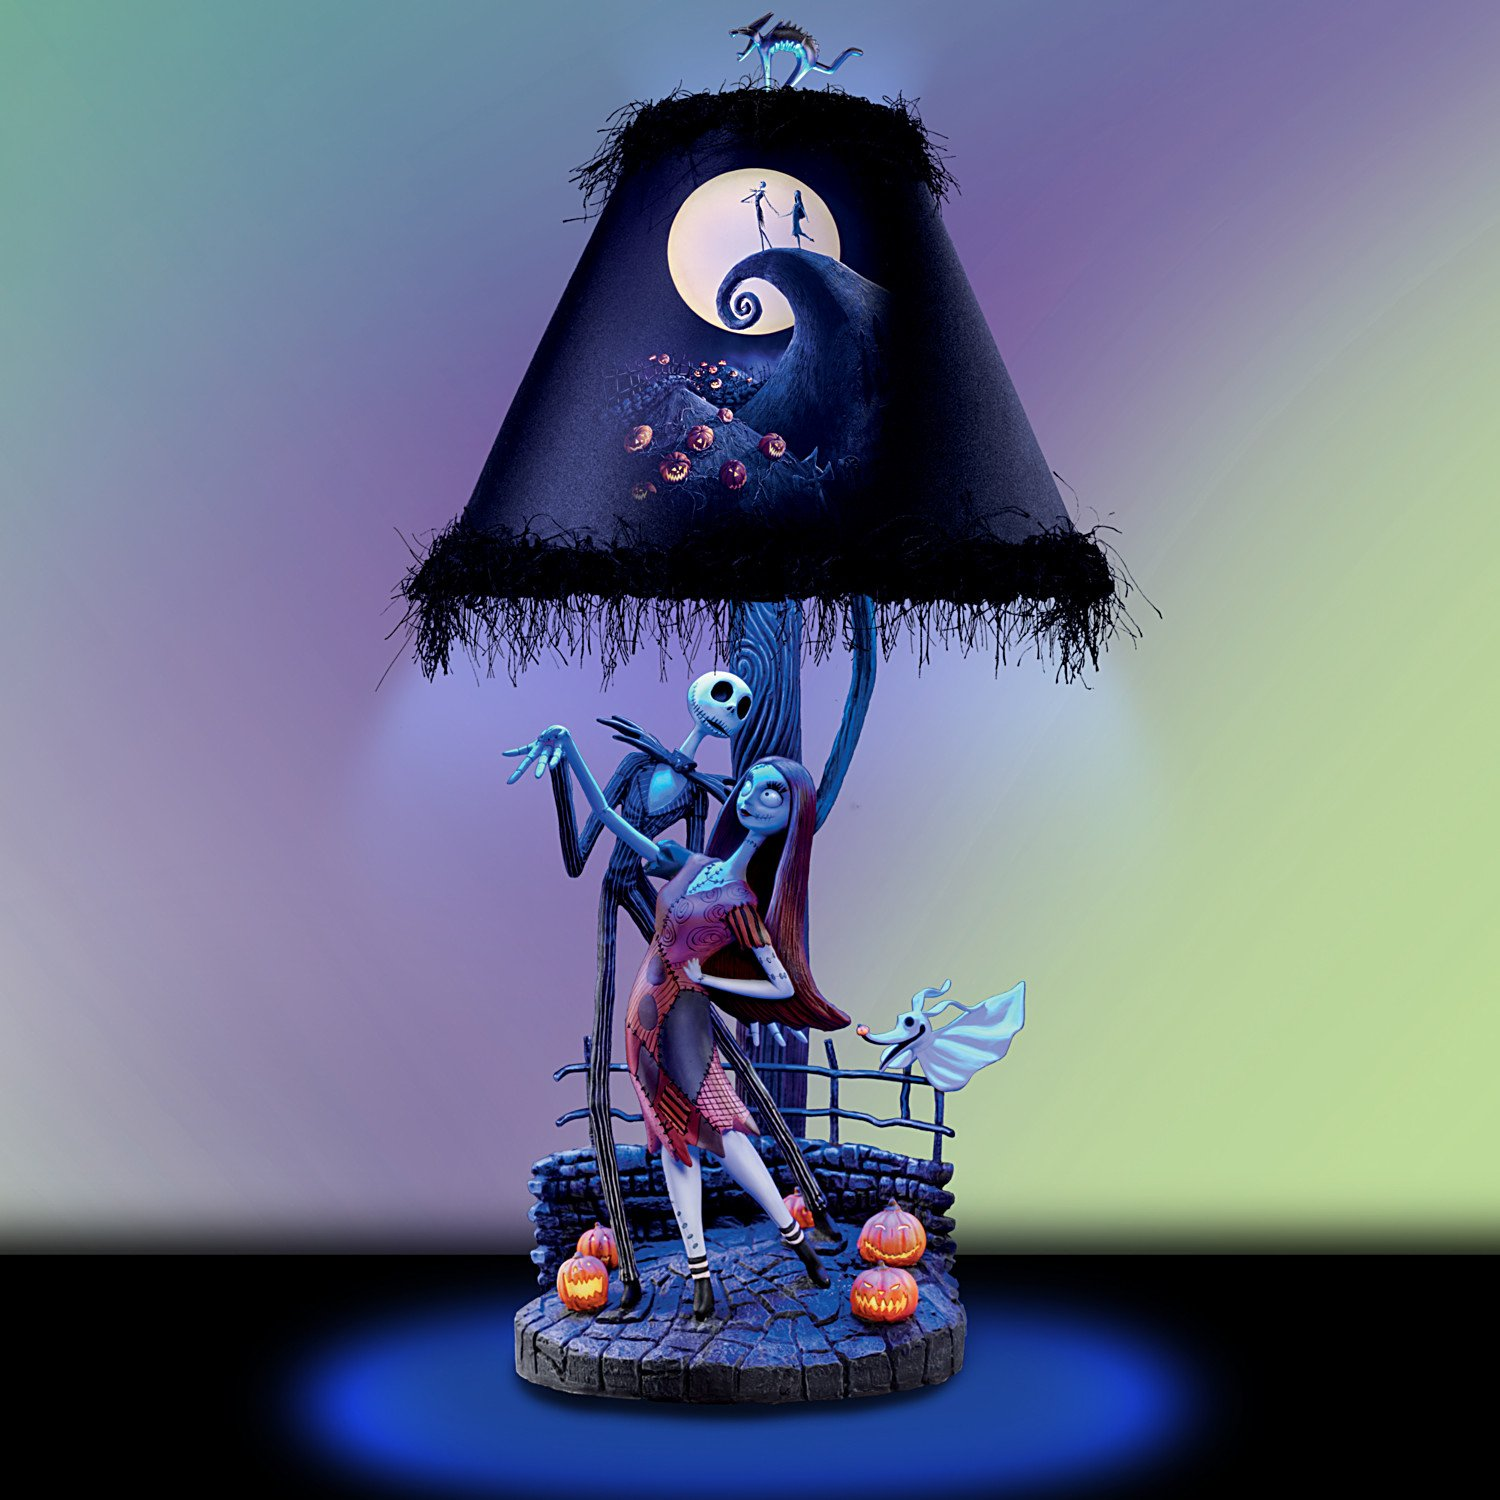 Tim Burtons The Nightmare Before Christmas Moonlight Table Lamp With Jack Sally And Zero By Bradford Exchange